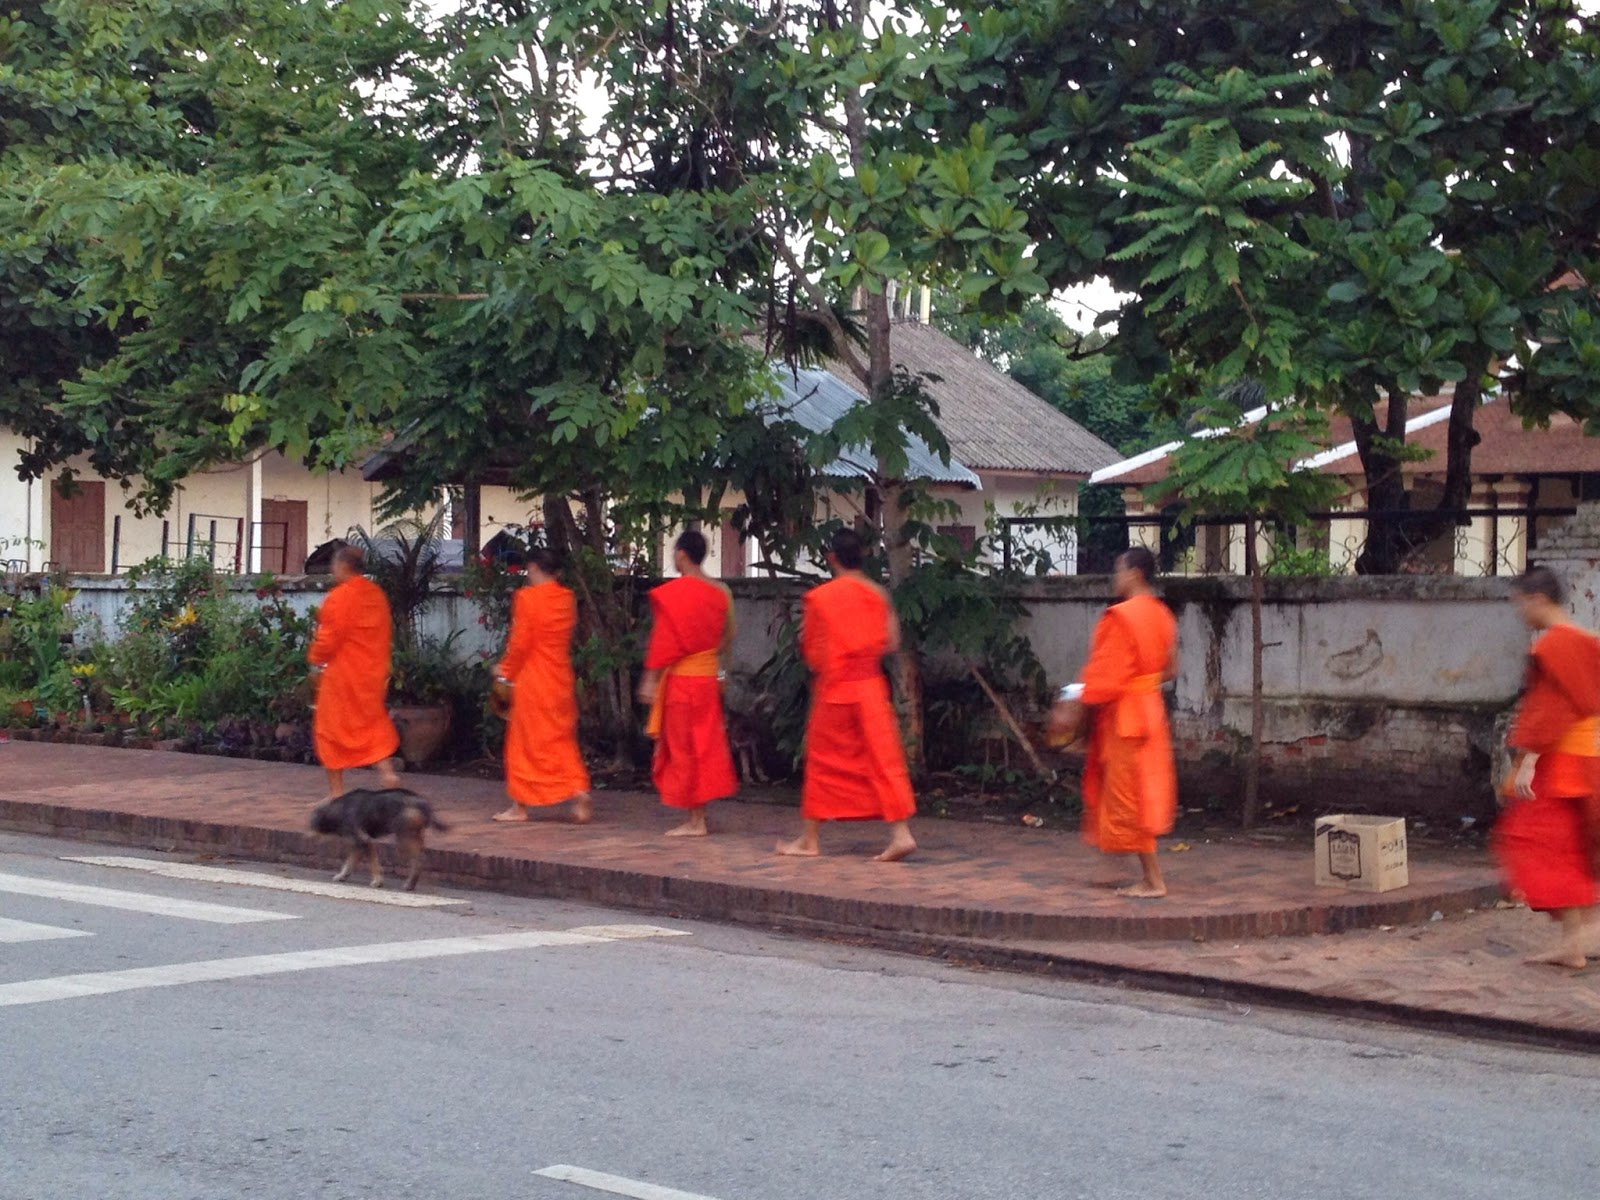 Luang Prabang - Some monks dumped some of their unwanted food into this cardboard box